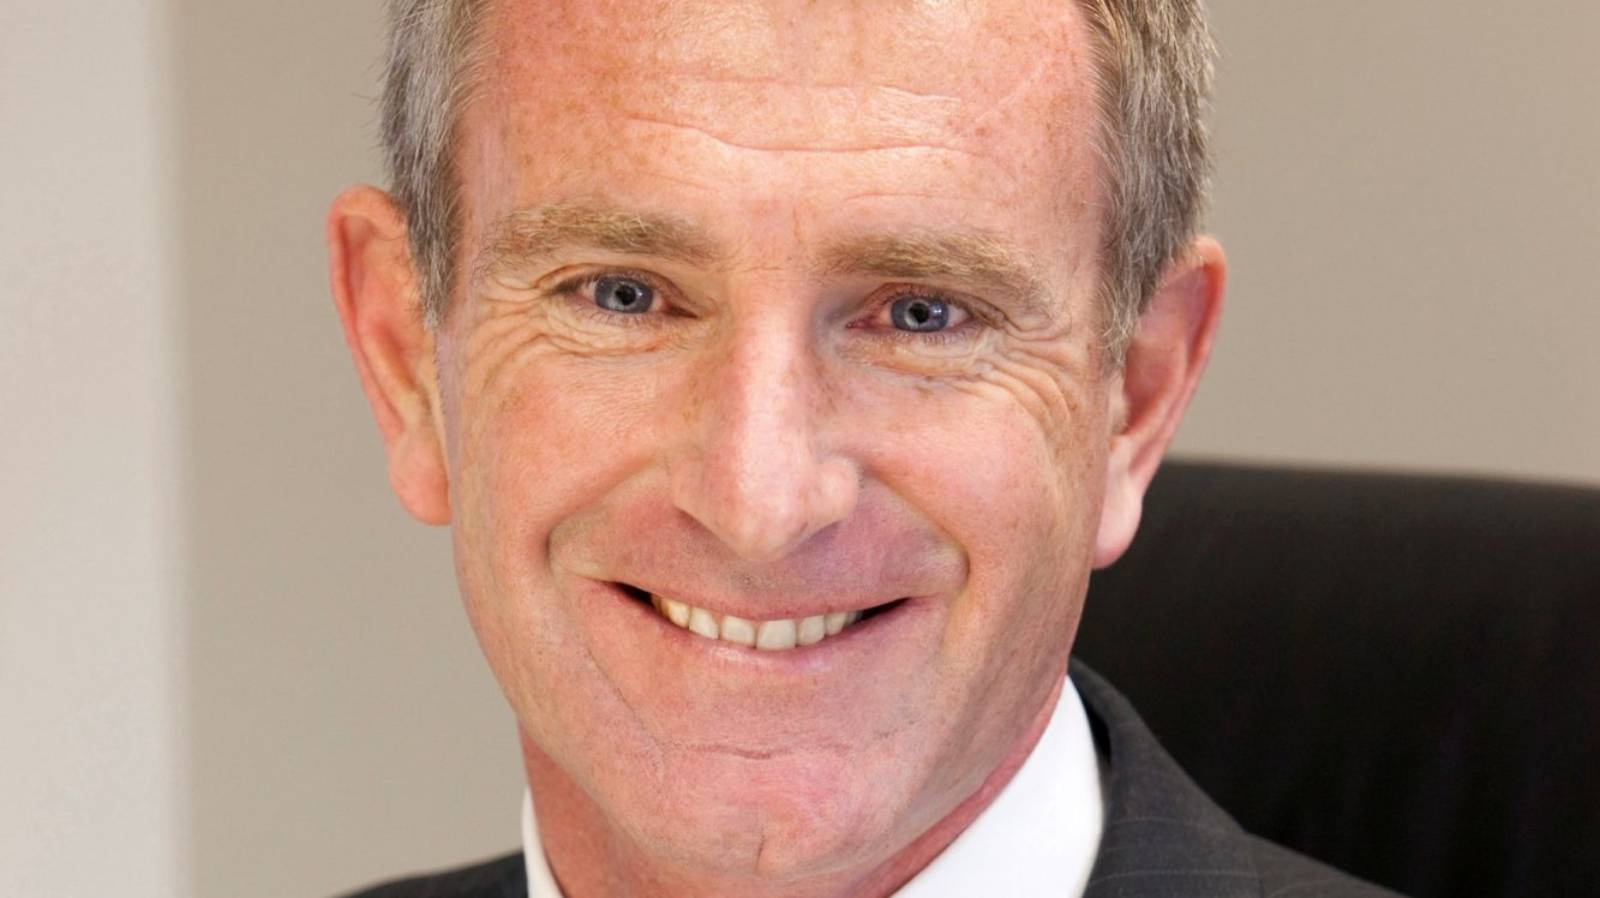 Questions surrounds principal's absence from exclusive private school